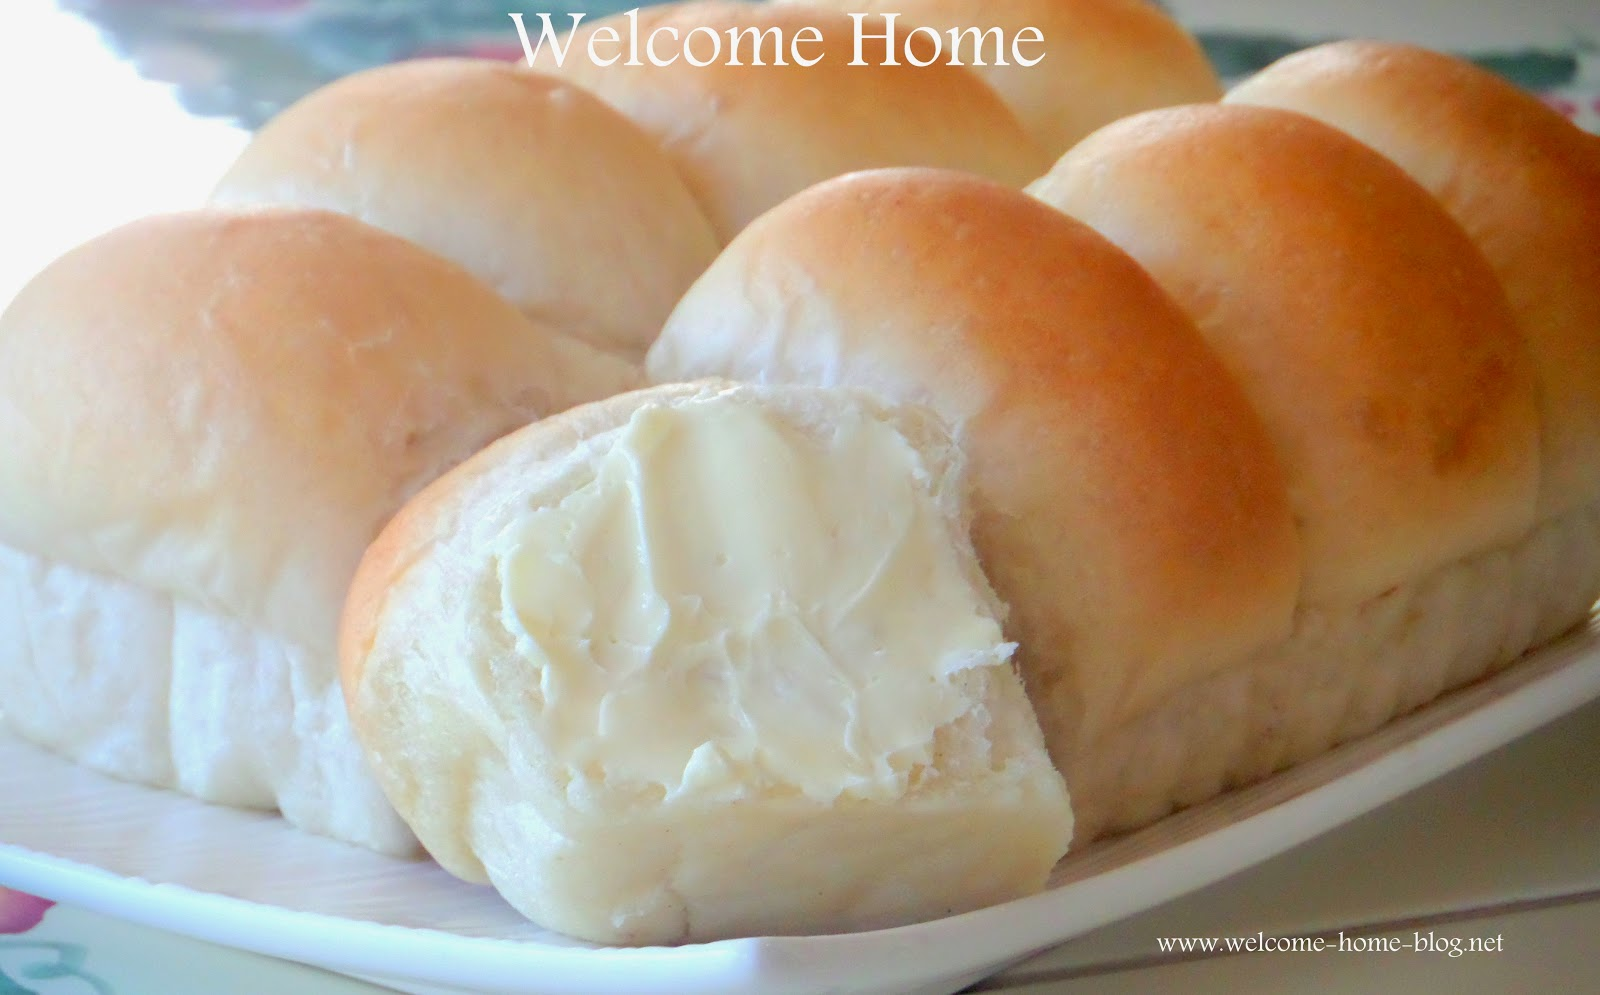 Welcome Home Blog Homemade Dinner Rolls Yeast Rolls